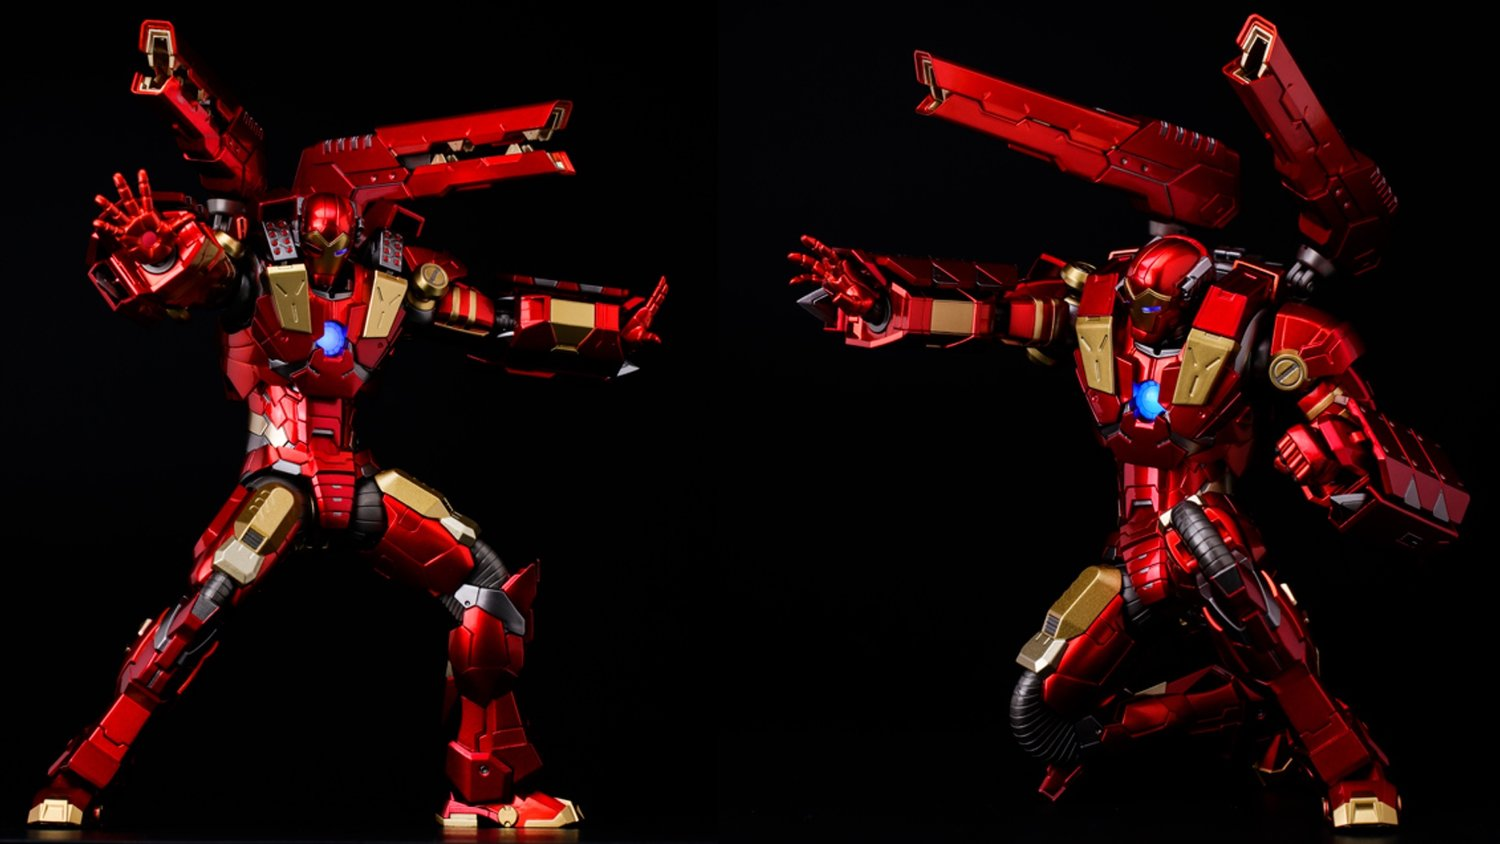 Insane Iron Man Action Figure With a Wicked Plasma Cannon!